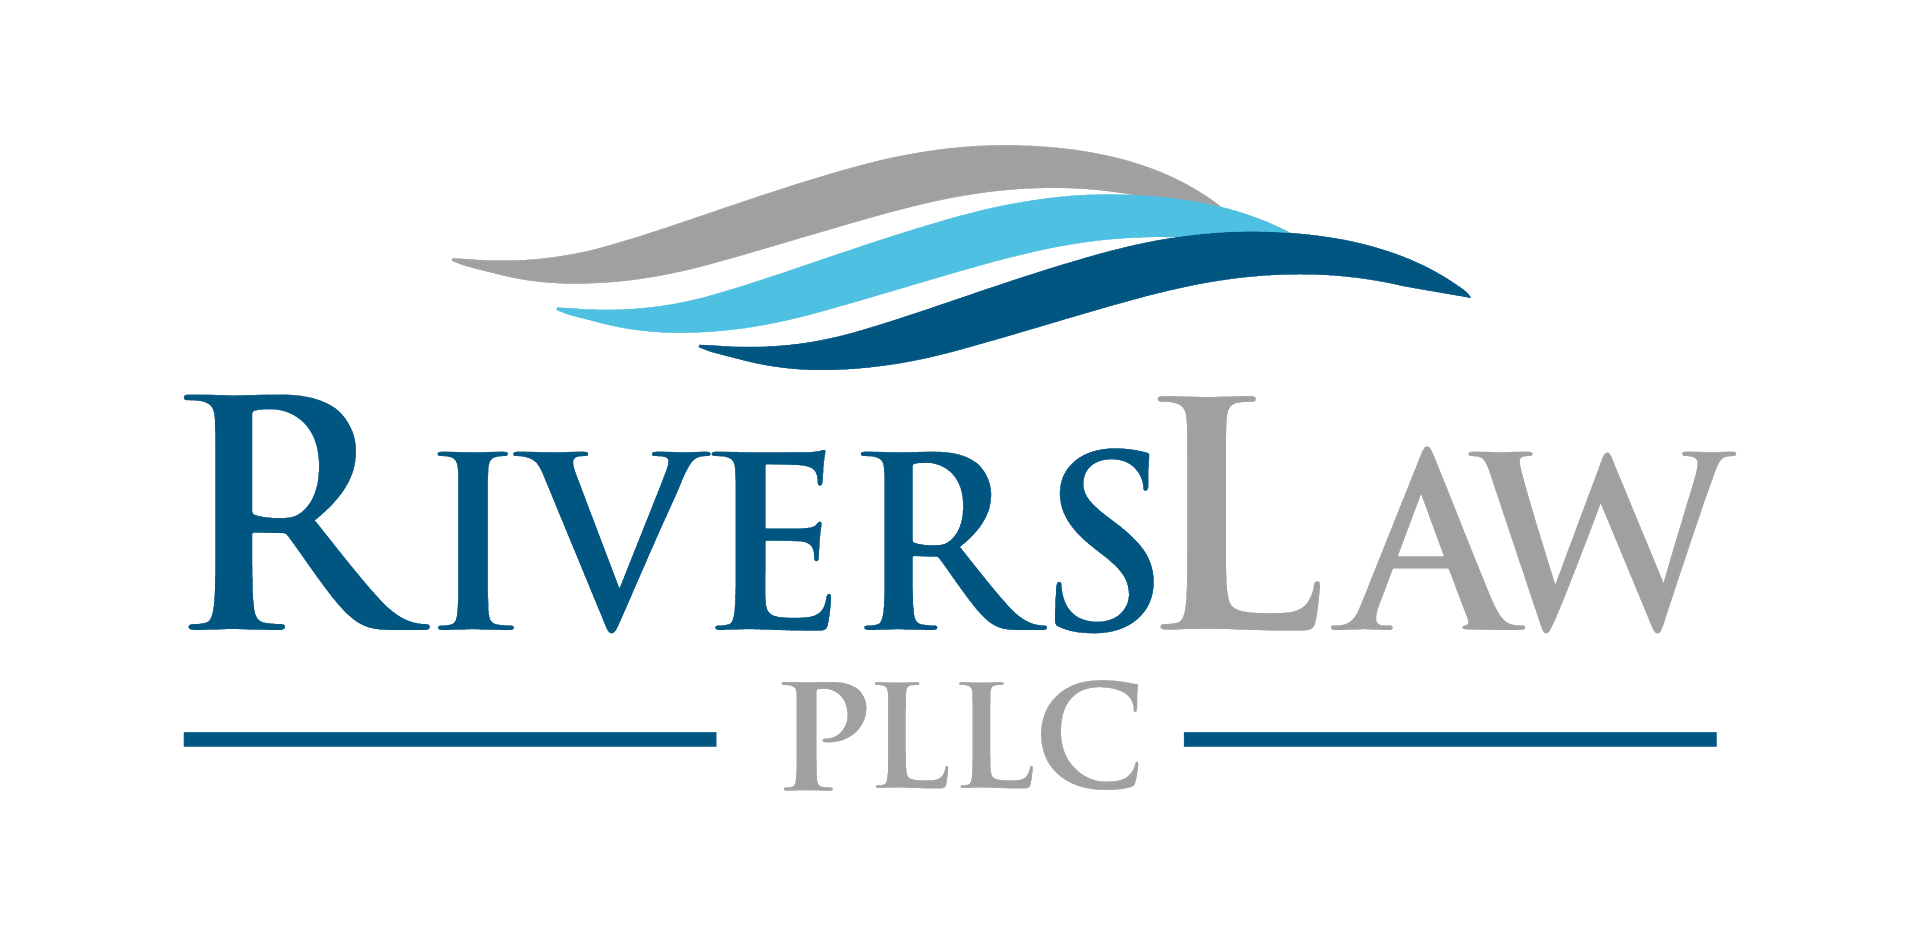 Rivers Law PLLC